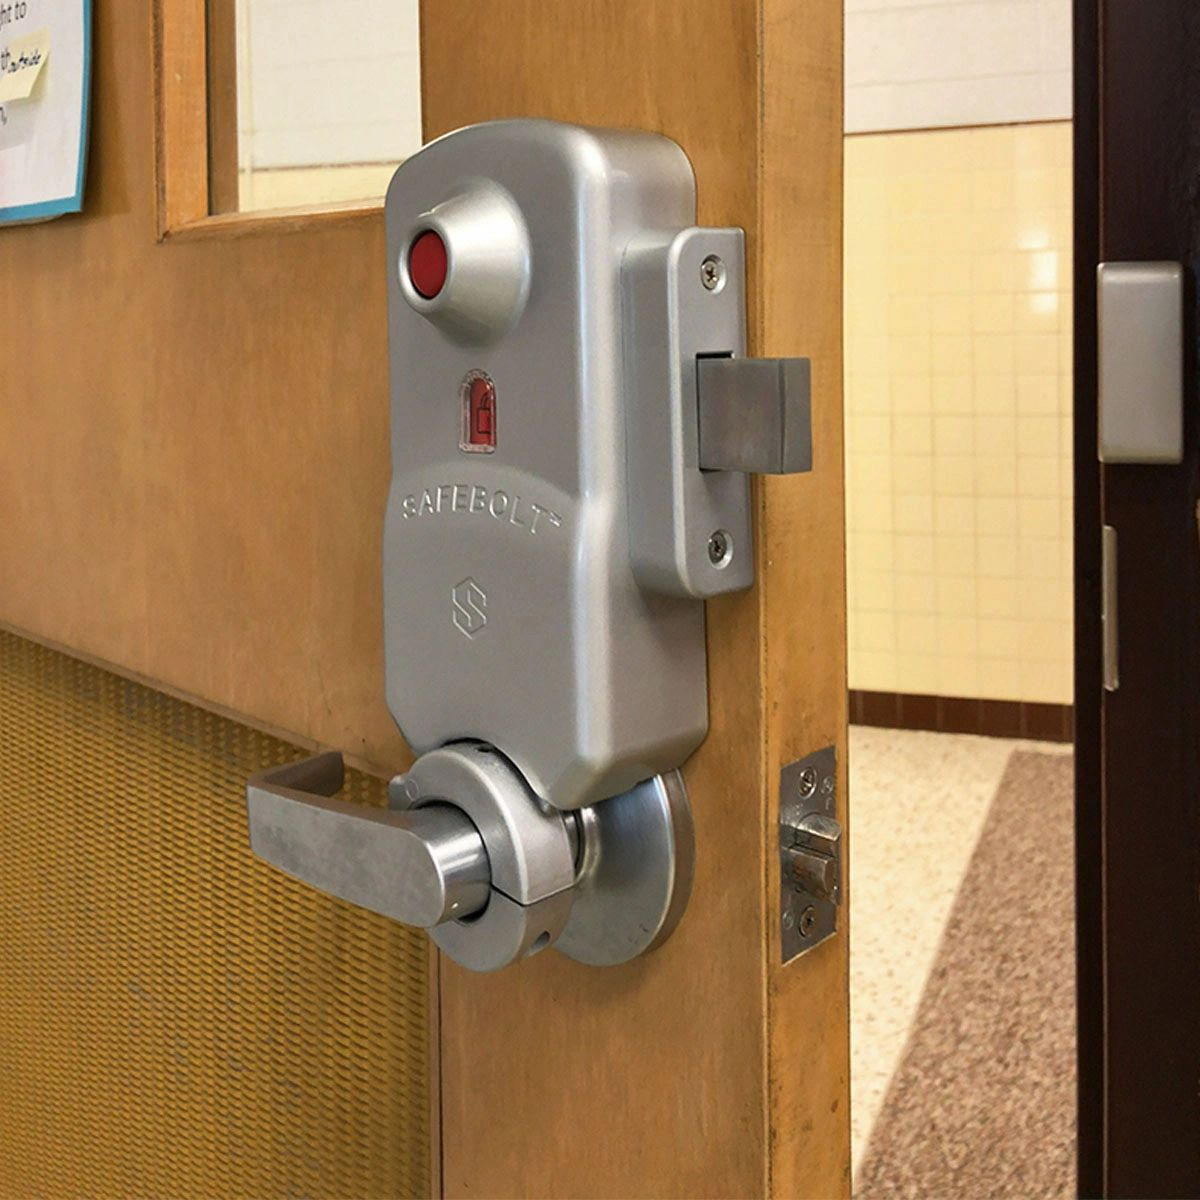 Red Button Locks like the SAFEBOLT™ are equipped with visual indicators on the classroom side of the doors to show when the emergency bolt has been engaged.